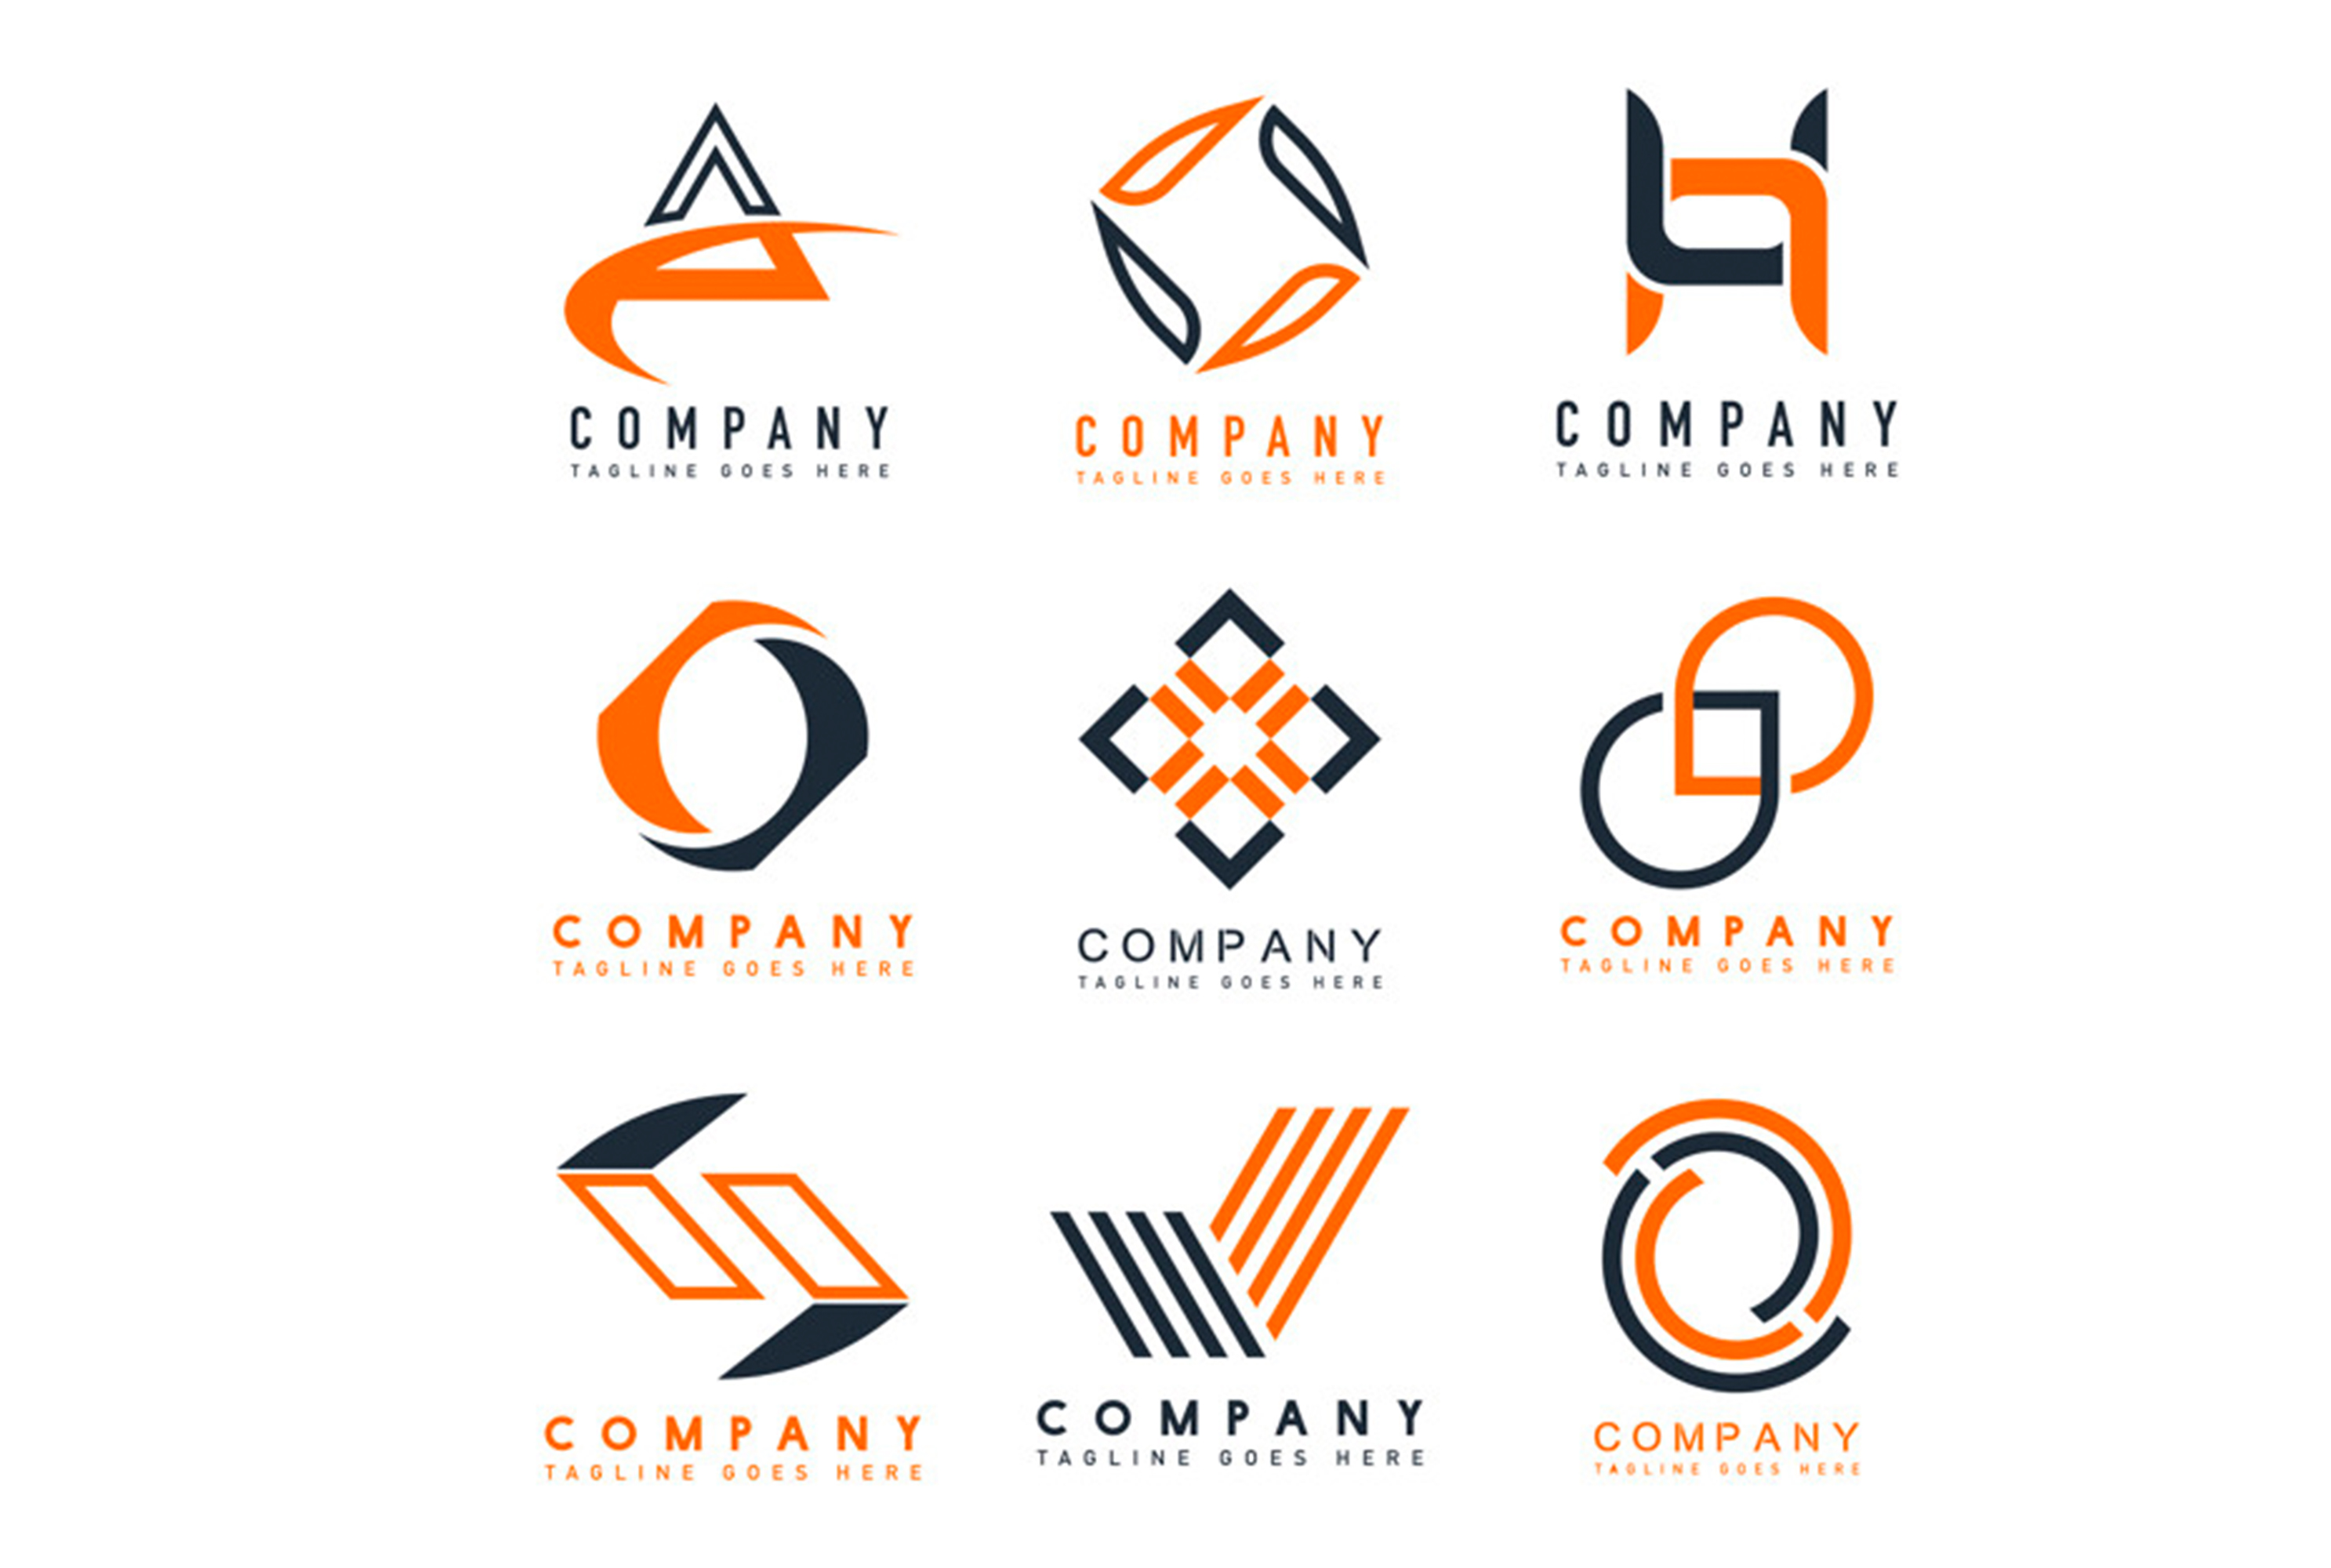 I will create a unique logo design for your business